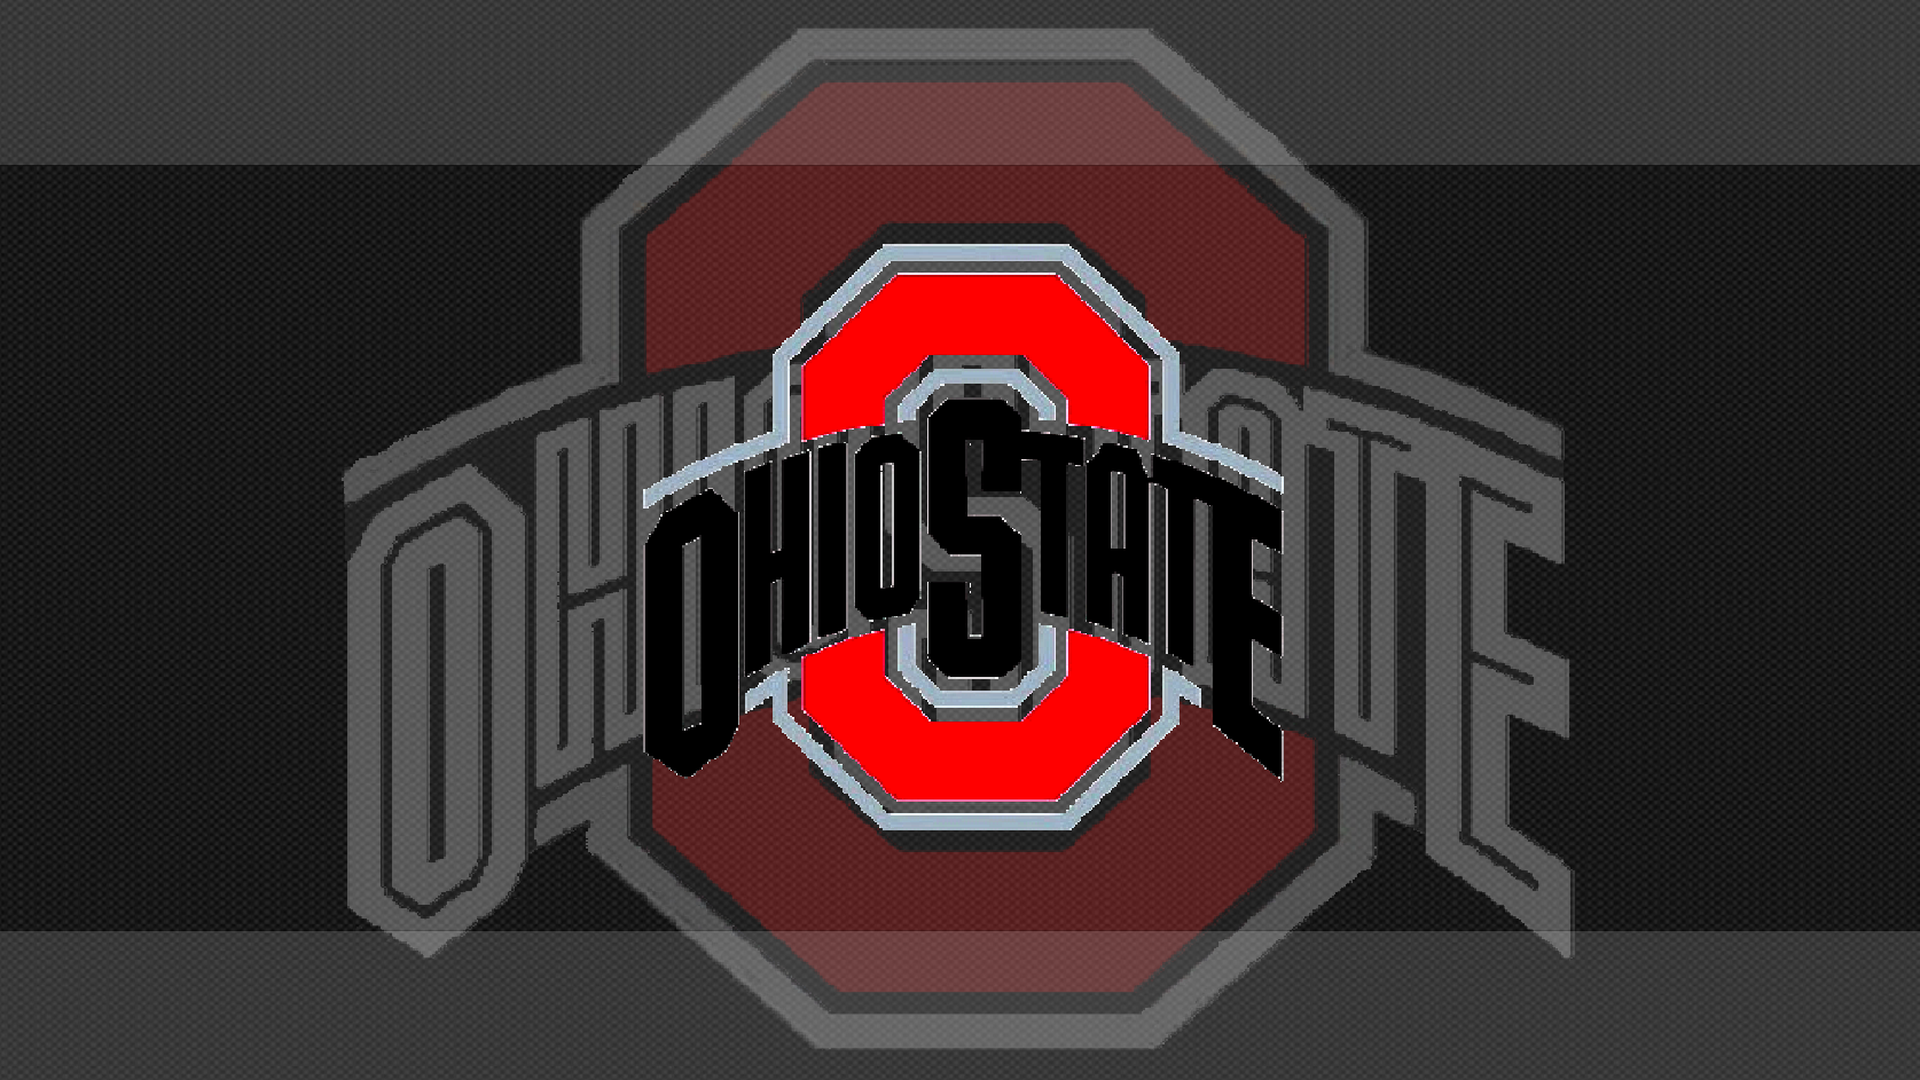 Ohio State Logo Wallpaper: Ohio State Buckeyes Images ATHLETIC LOGO #7 HD Wallpaper